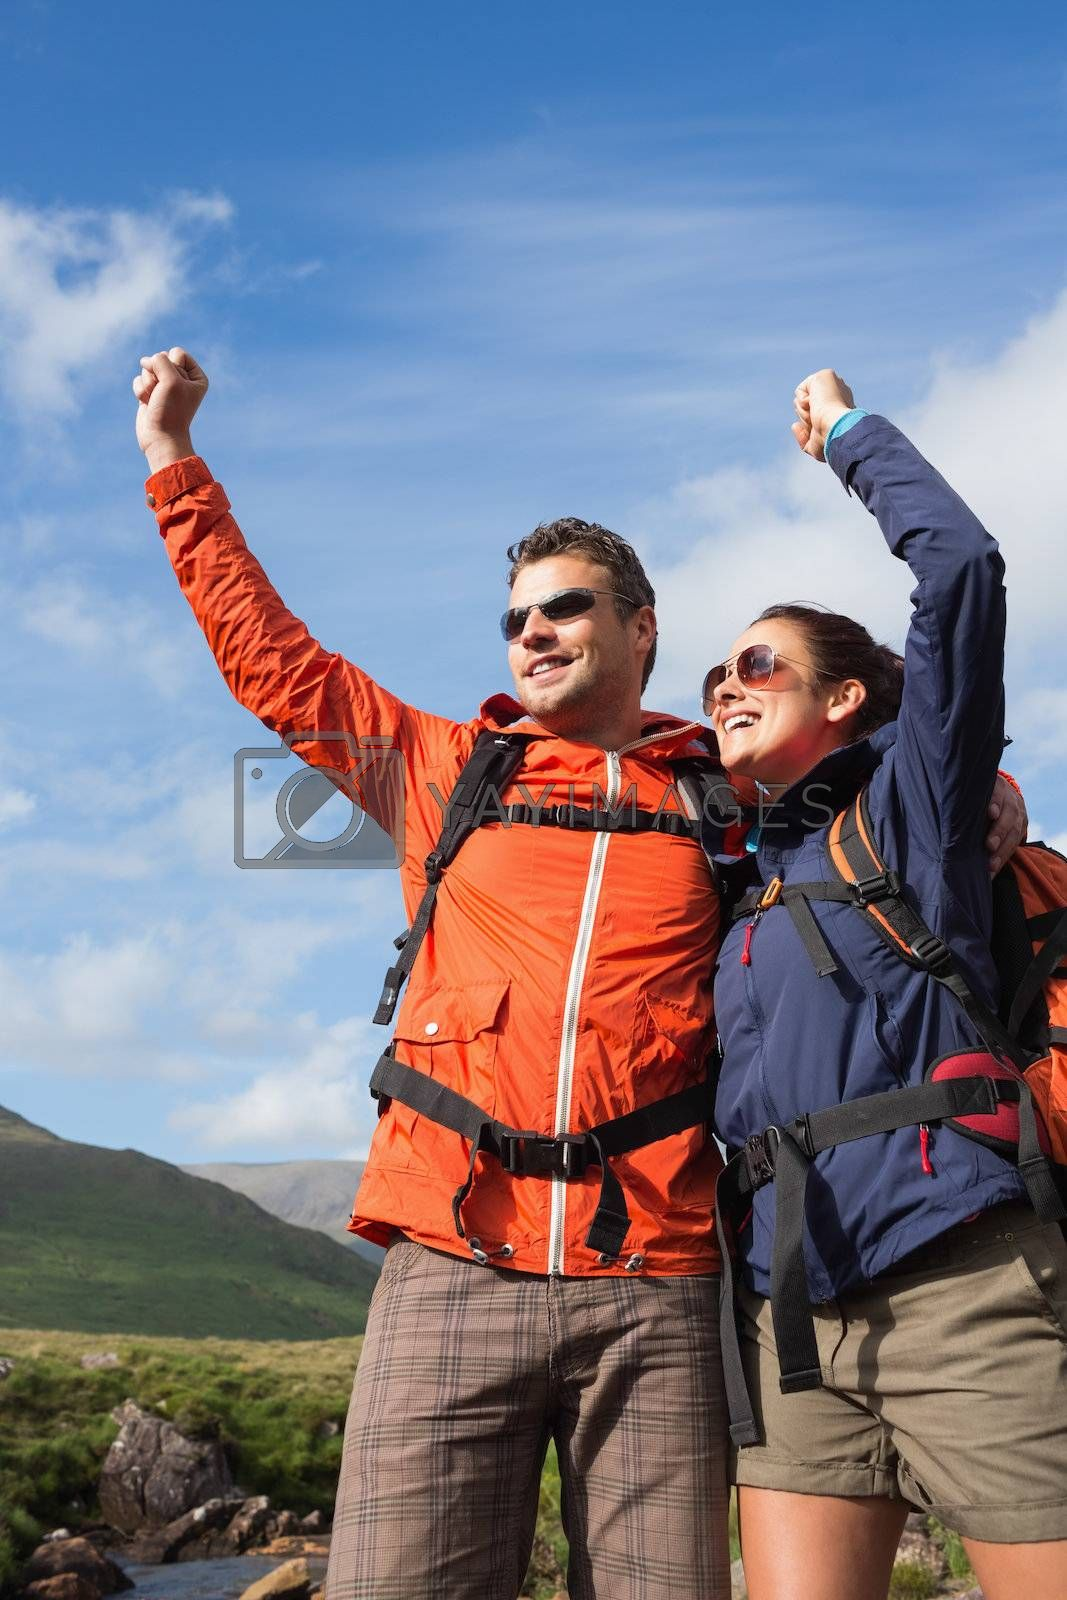 Couple on hike cheering and smiling by Wavebreakmedia